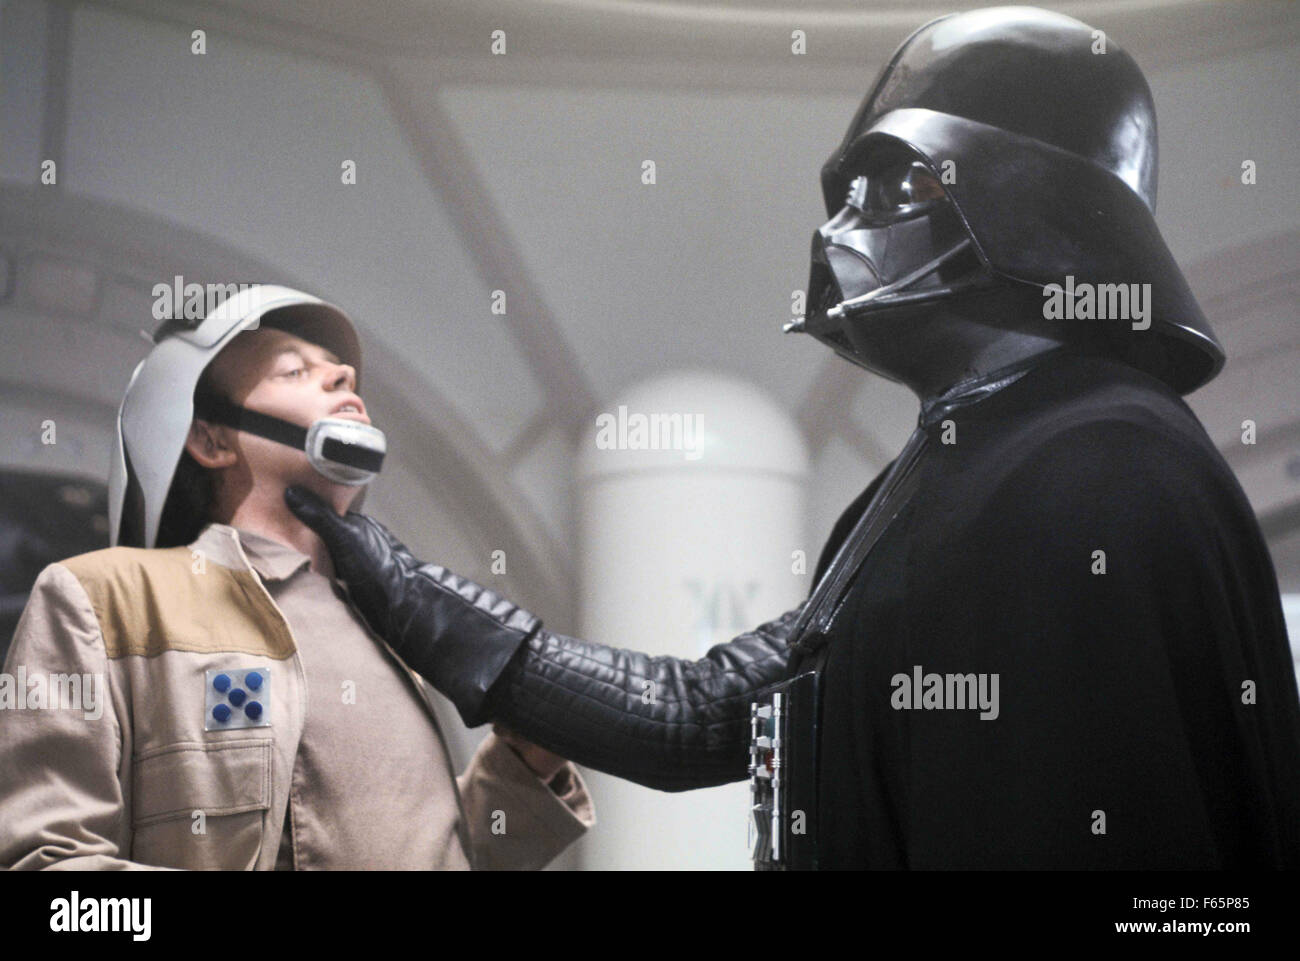 Star Wars: Episode IV - A New Hope Year : 1977 USA Director : George Lucas David Prowse - Stock Image